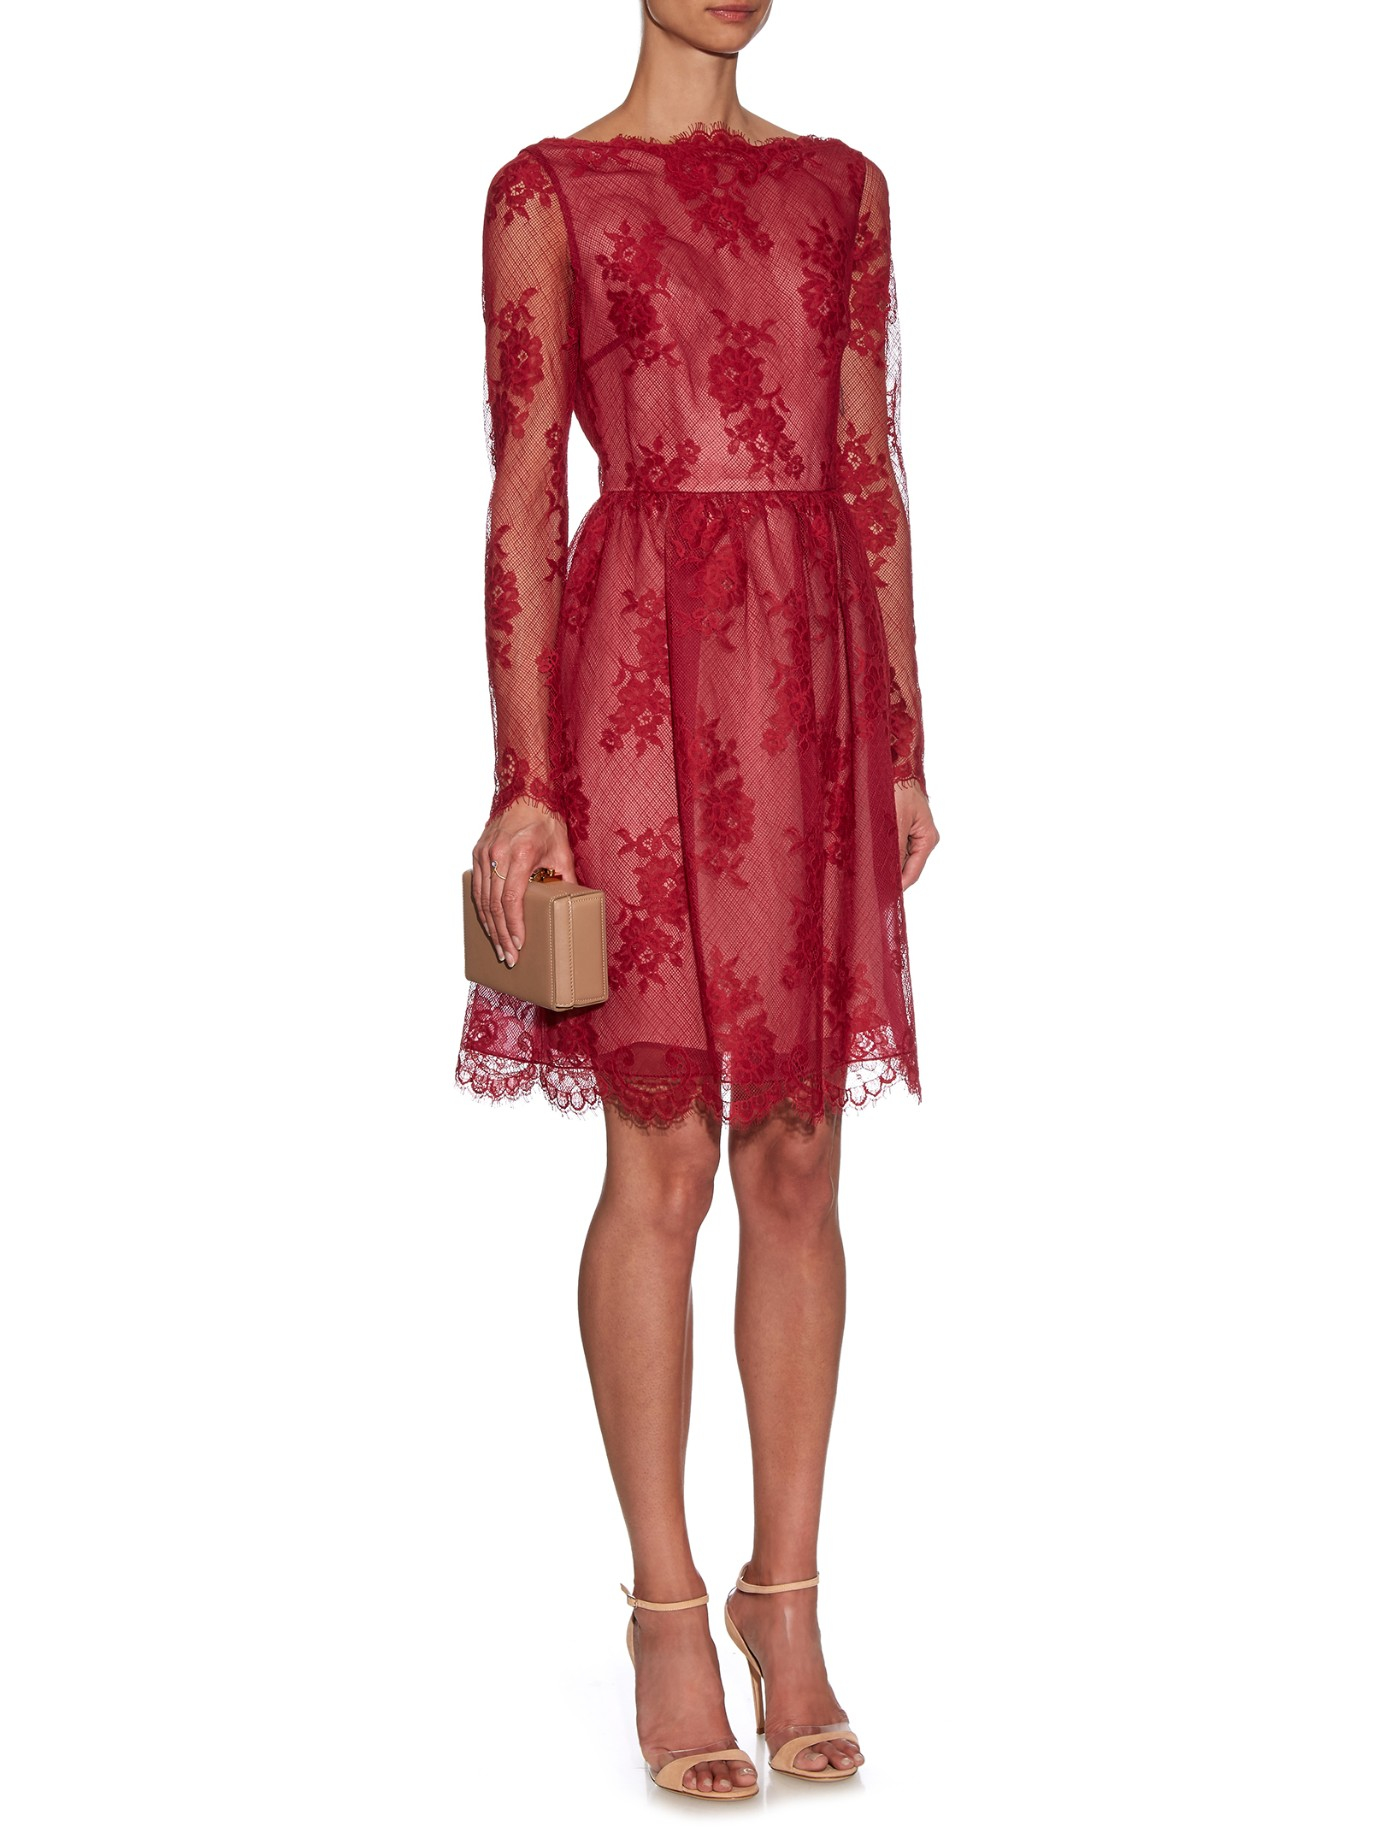 Erdem Dolores Floral-lace Dress in Red - Lyst